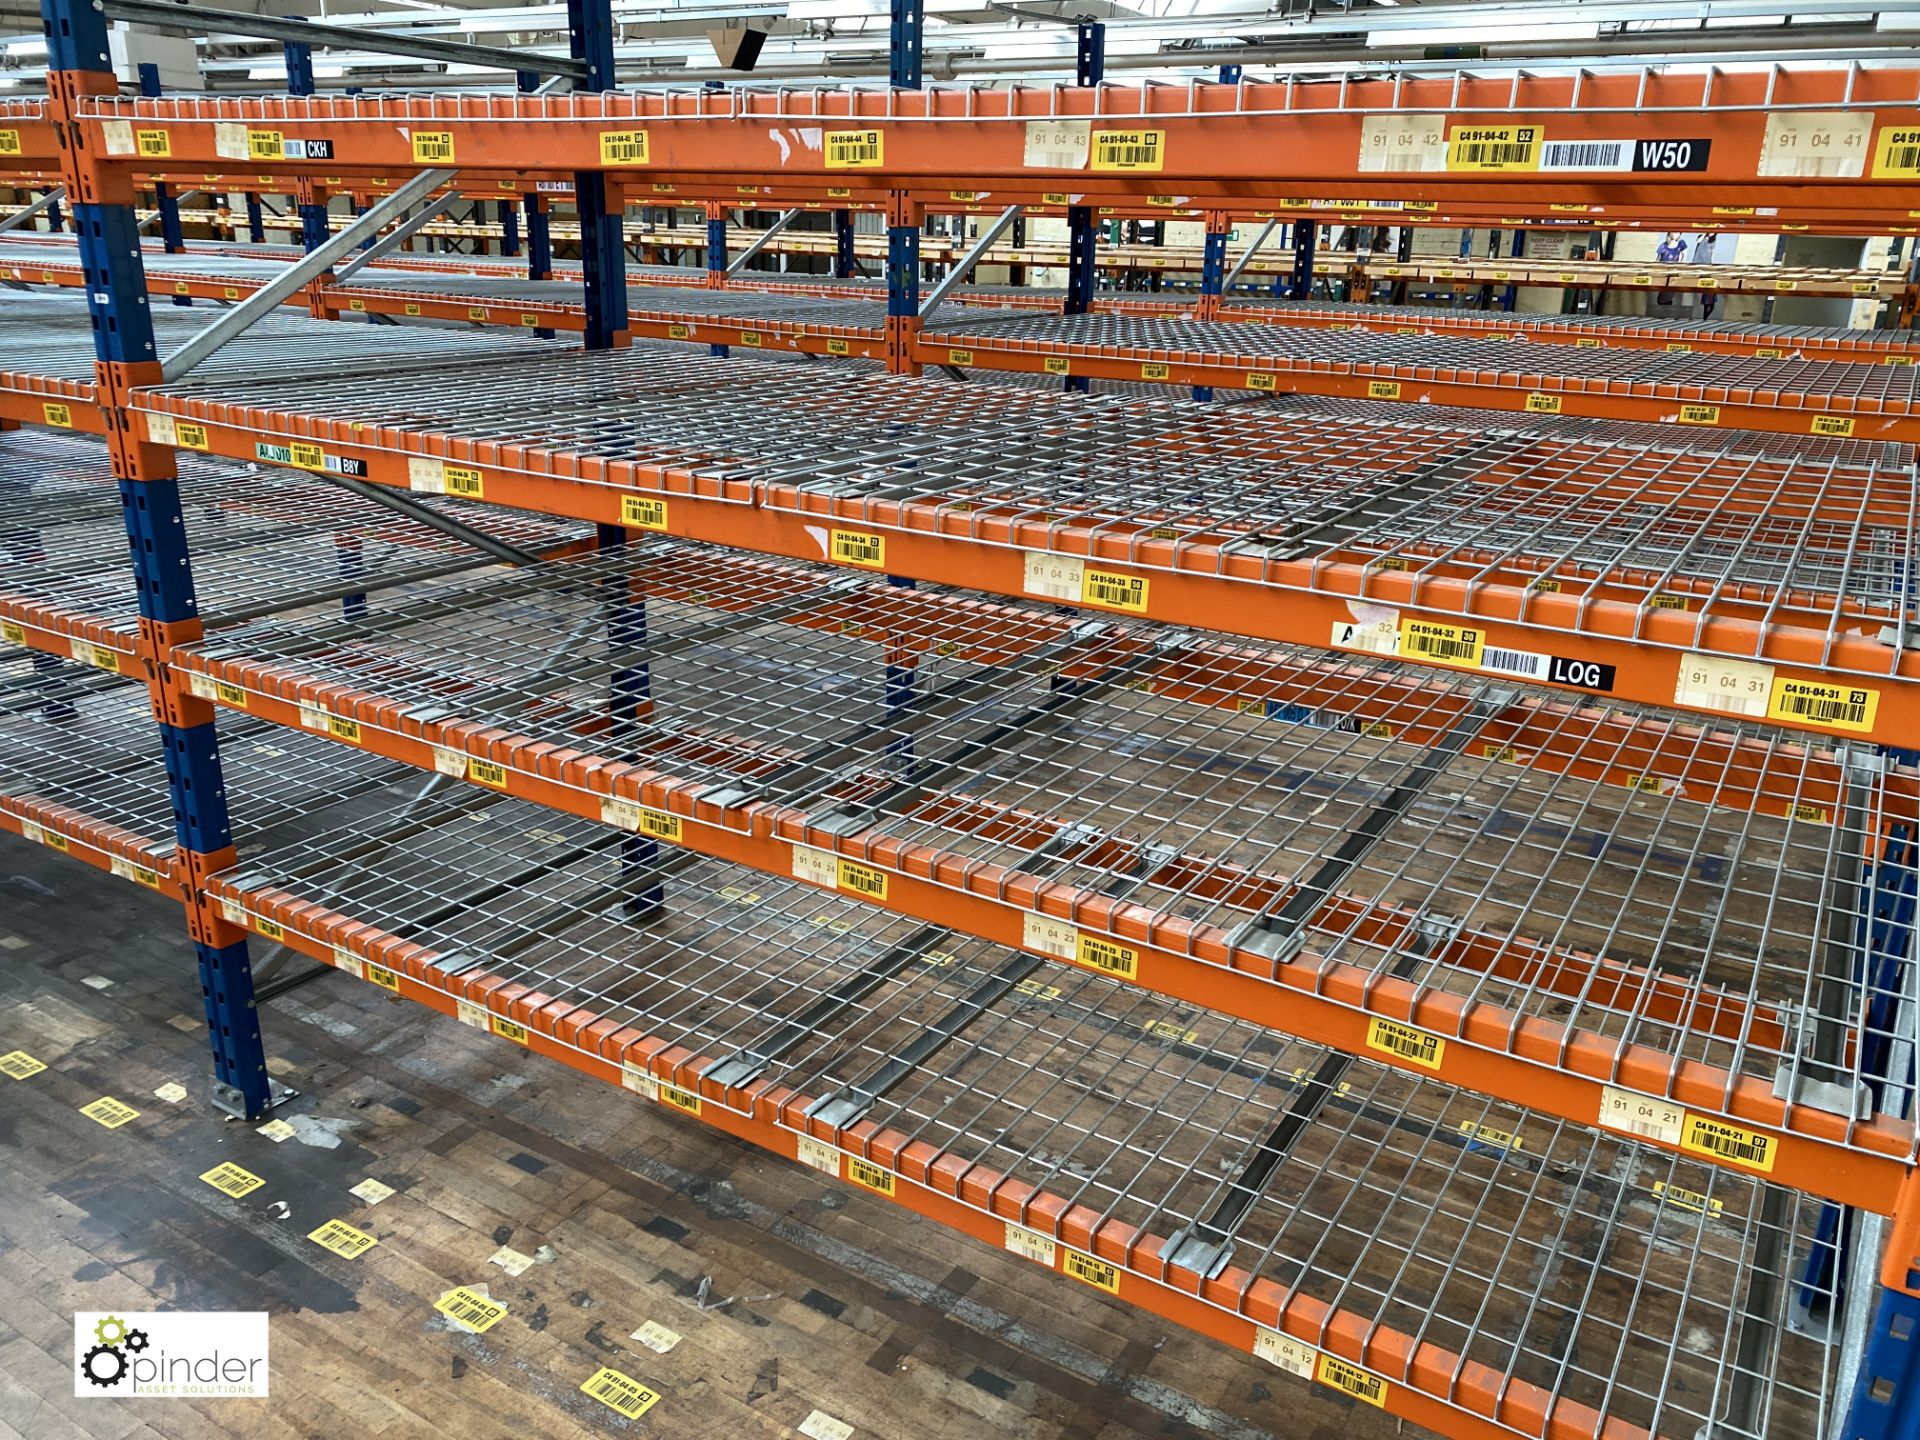 7 bays PSS 2K85 16 boltless Stock Racking, comprising 8 uprights 2400mm x 1200mm, 56 beams 2700mm, - Image 4 of 5